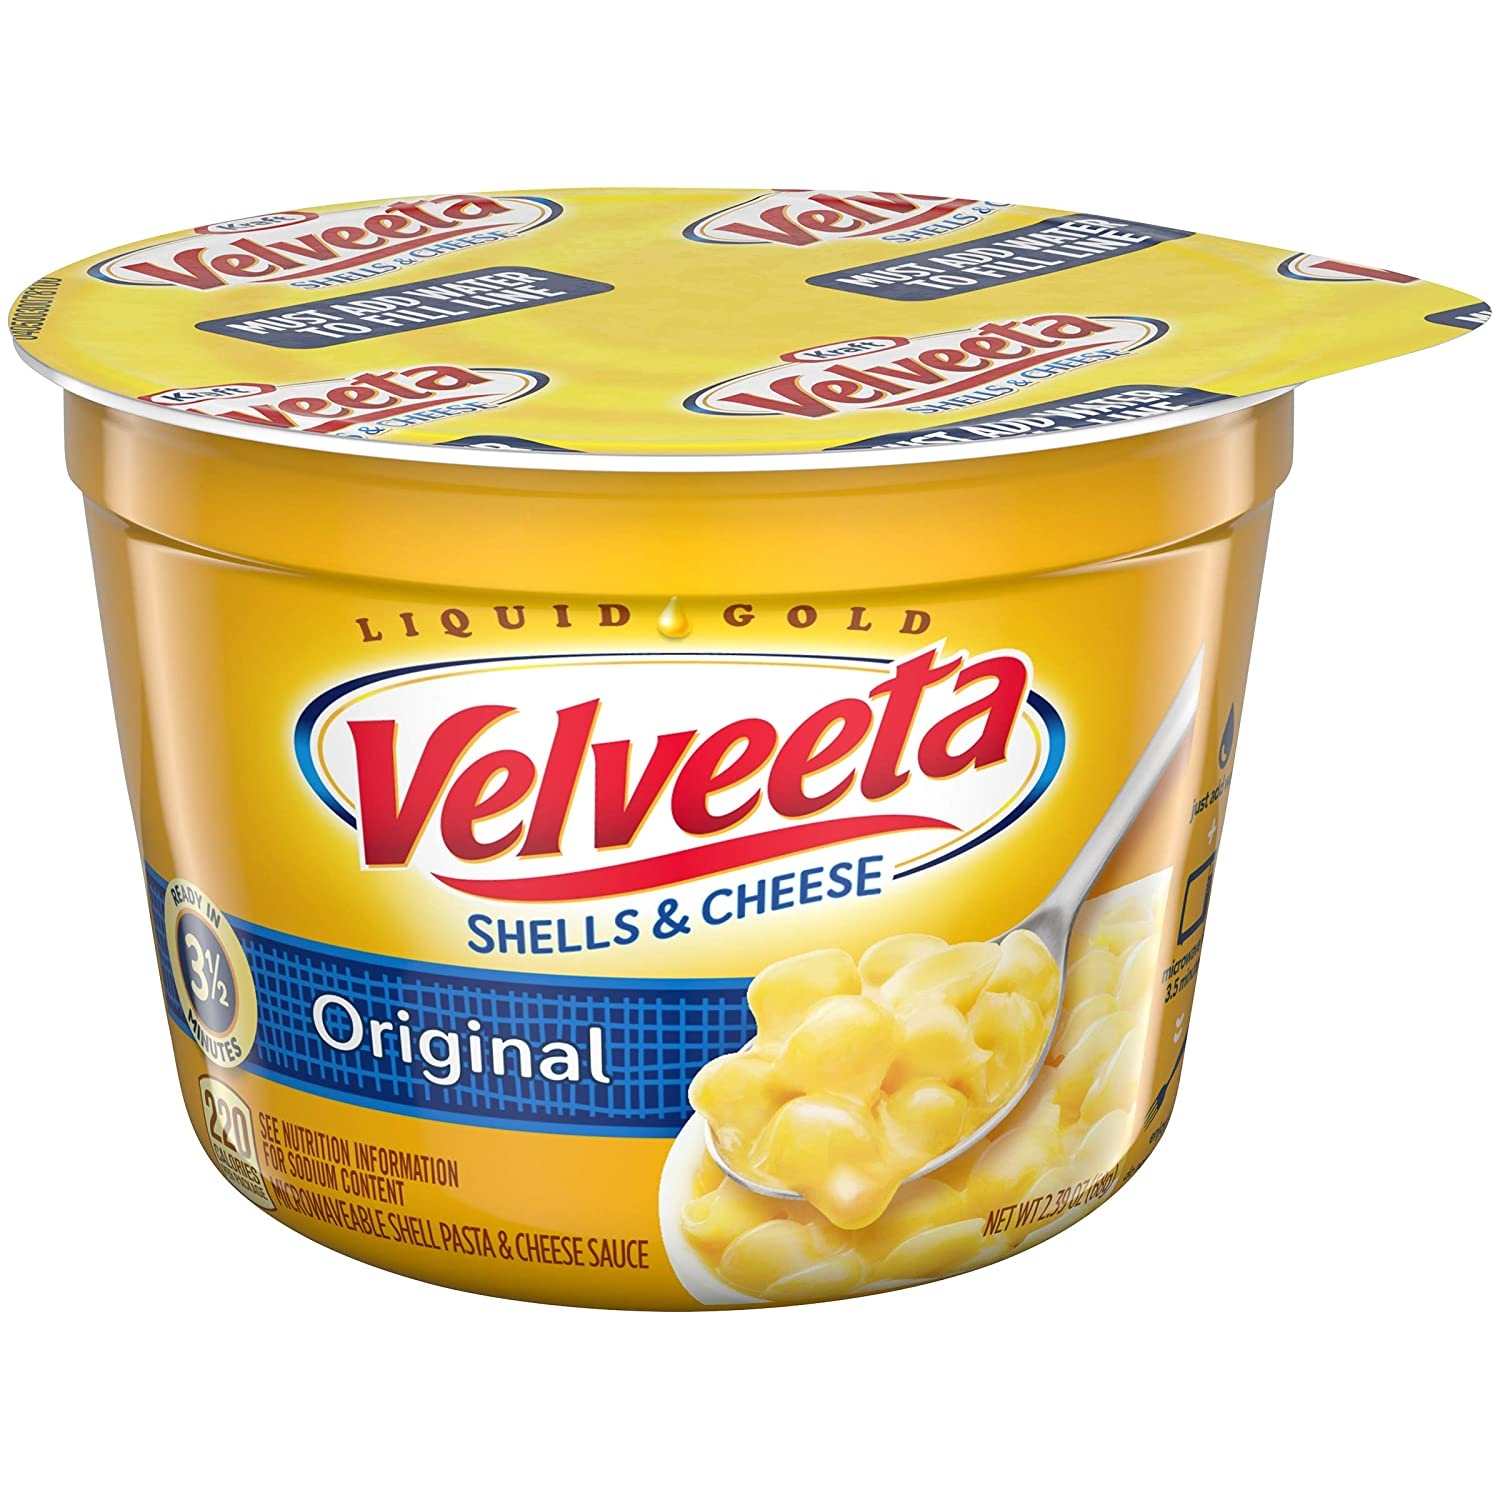 Velveeta Original Shells and Cheese Single Serve Microwave Dinner (2.39 oz Cup)